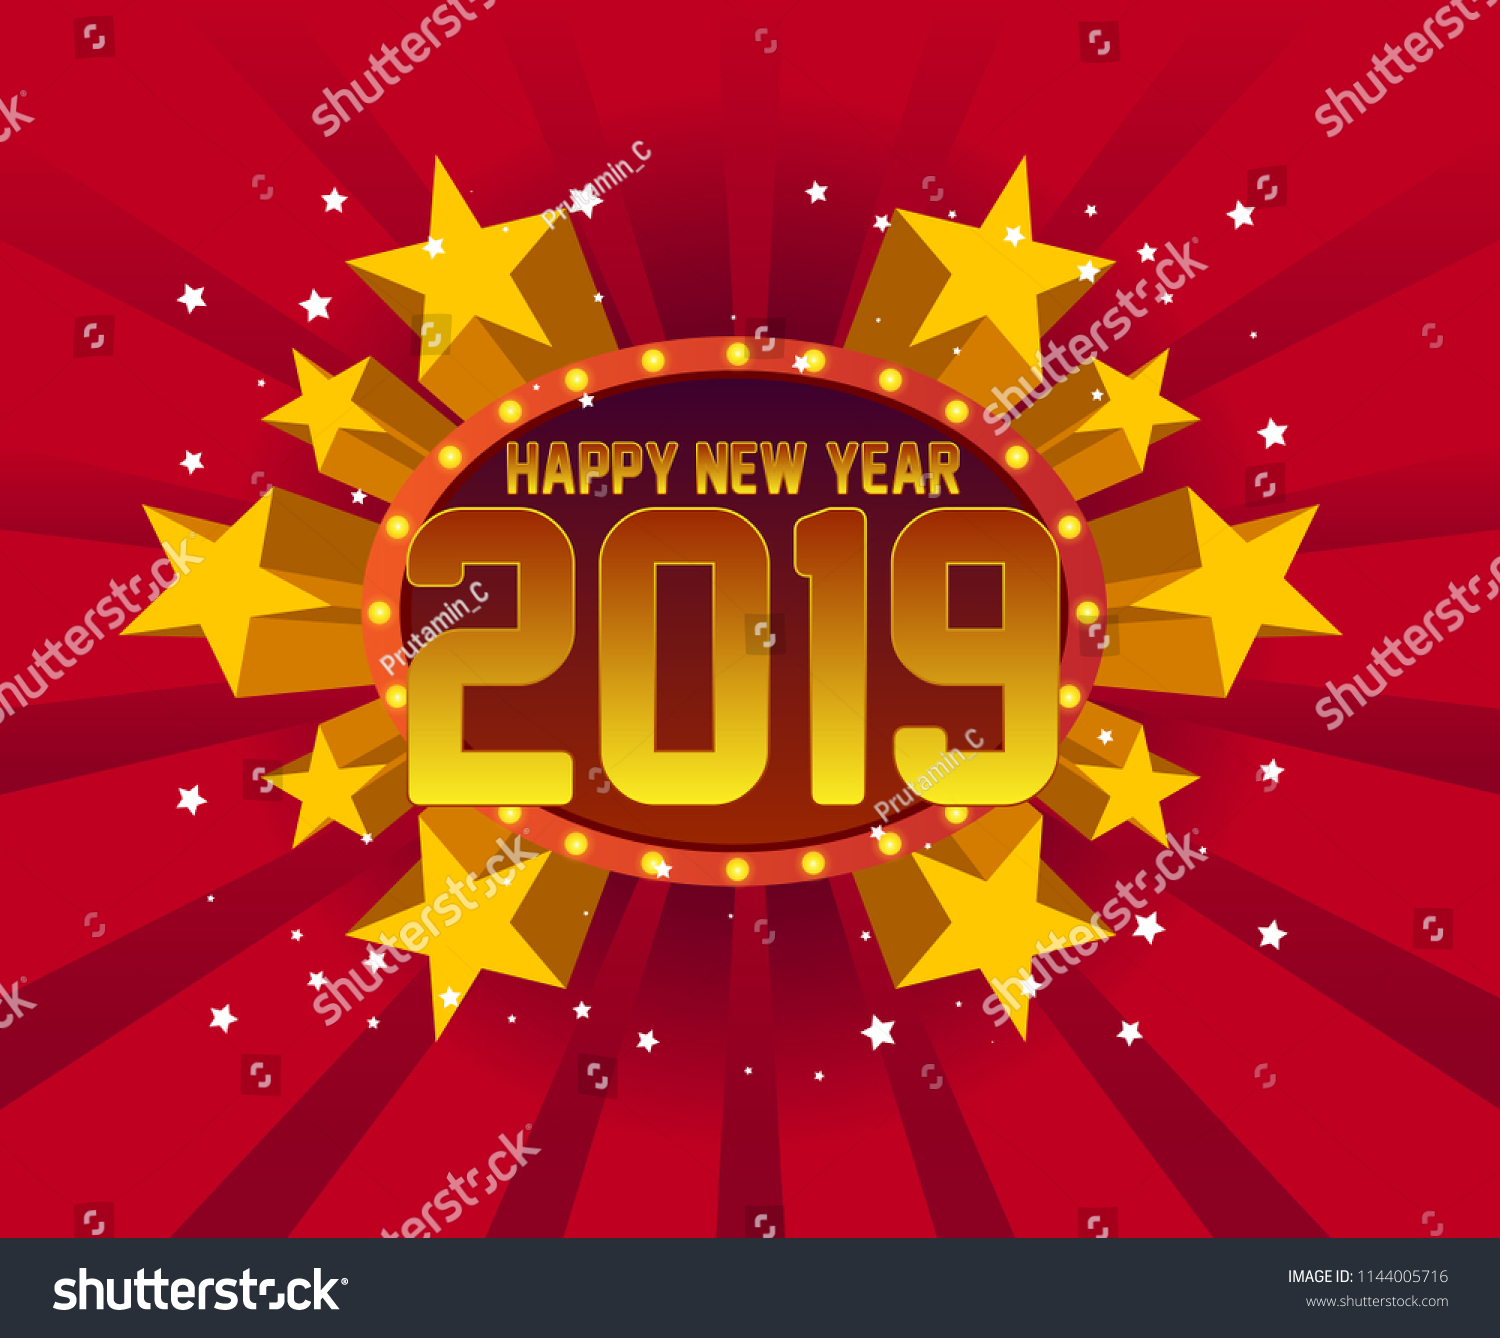 happy new year 2019 beautiful greeting card background or banner with star party theme